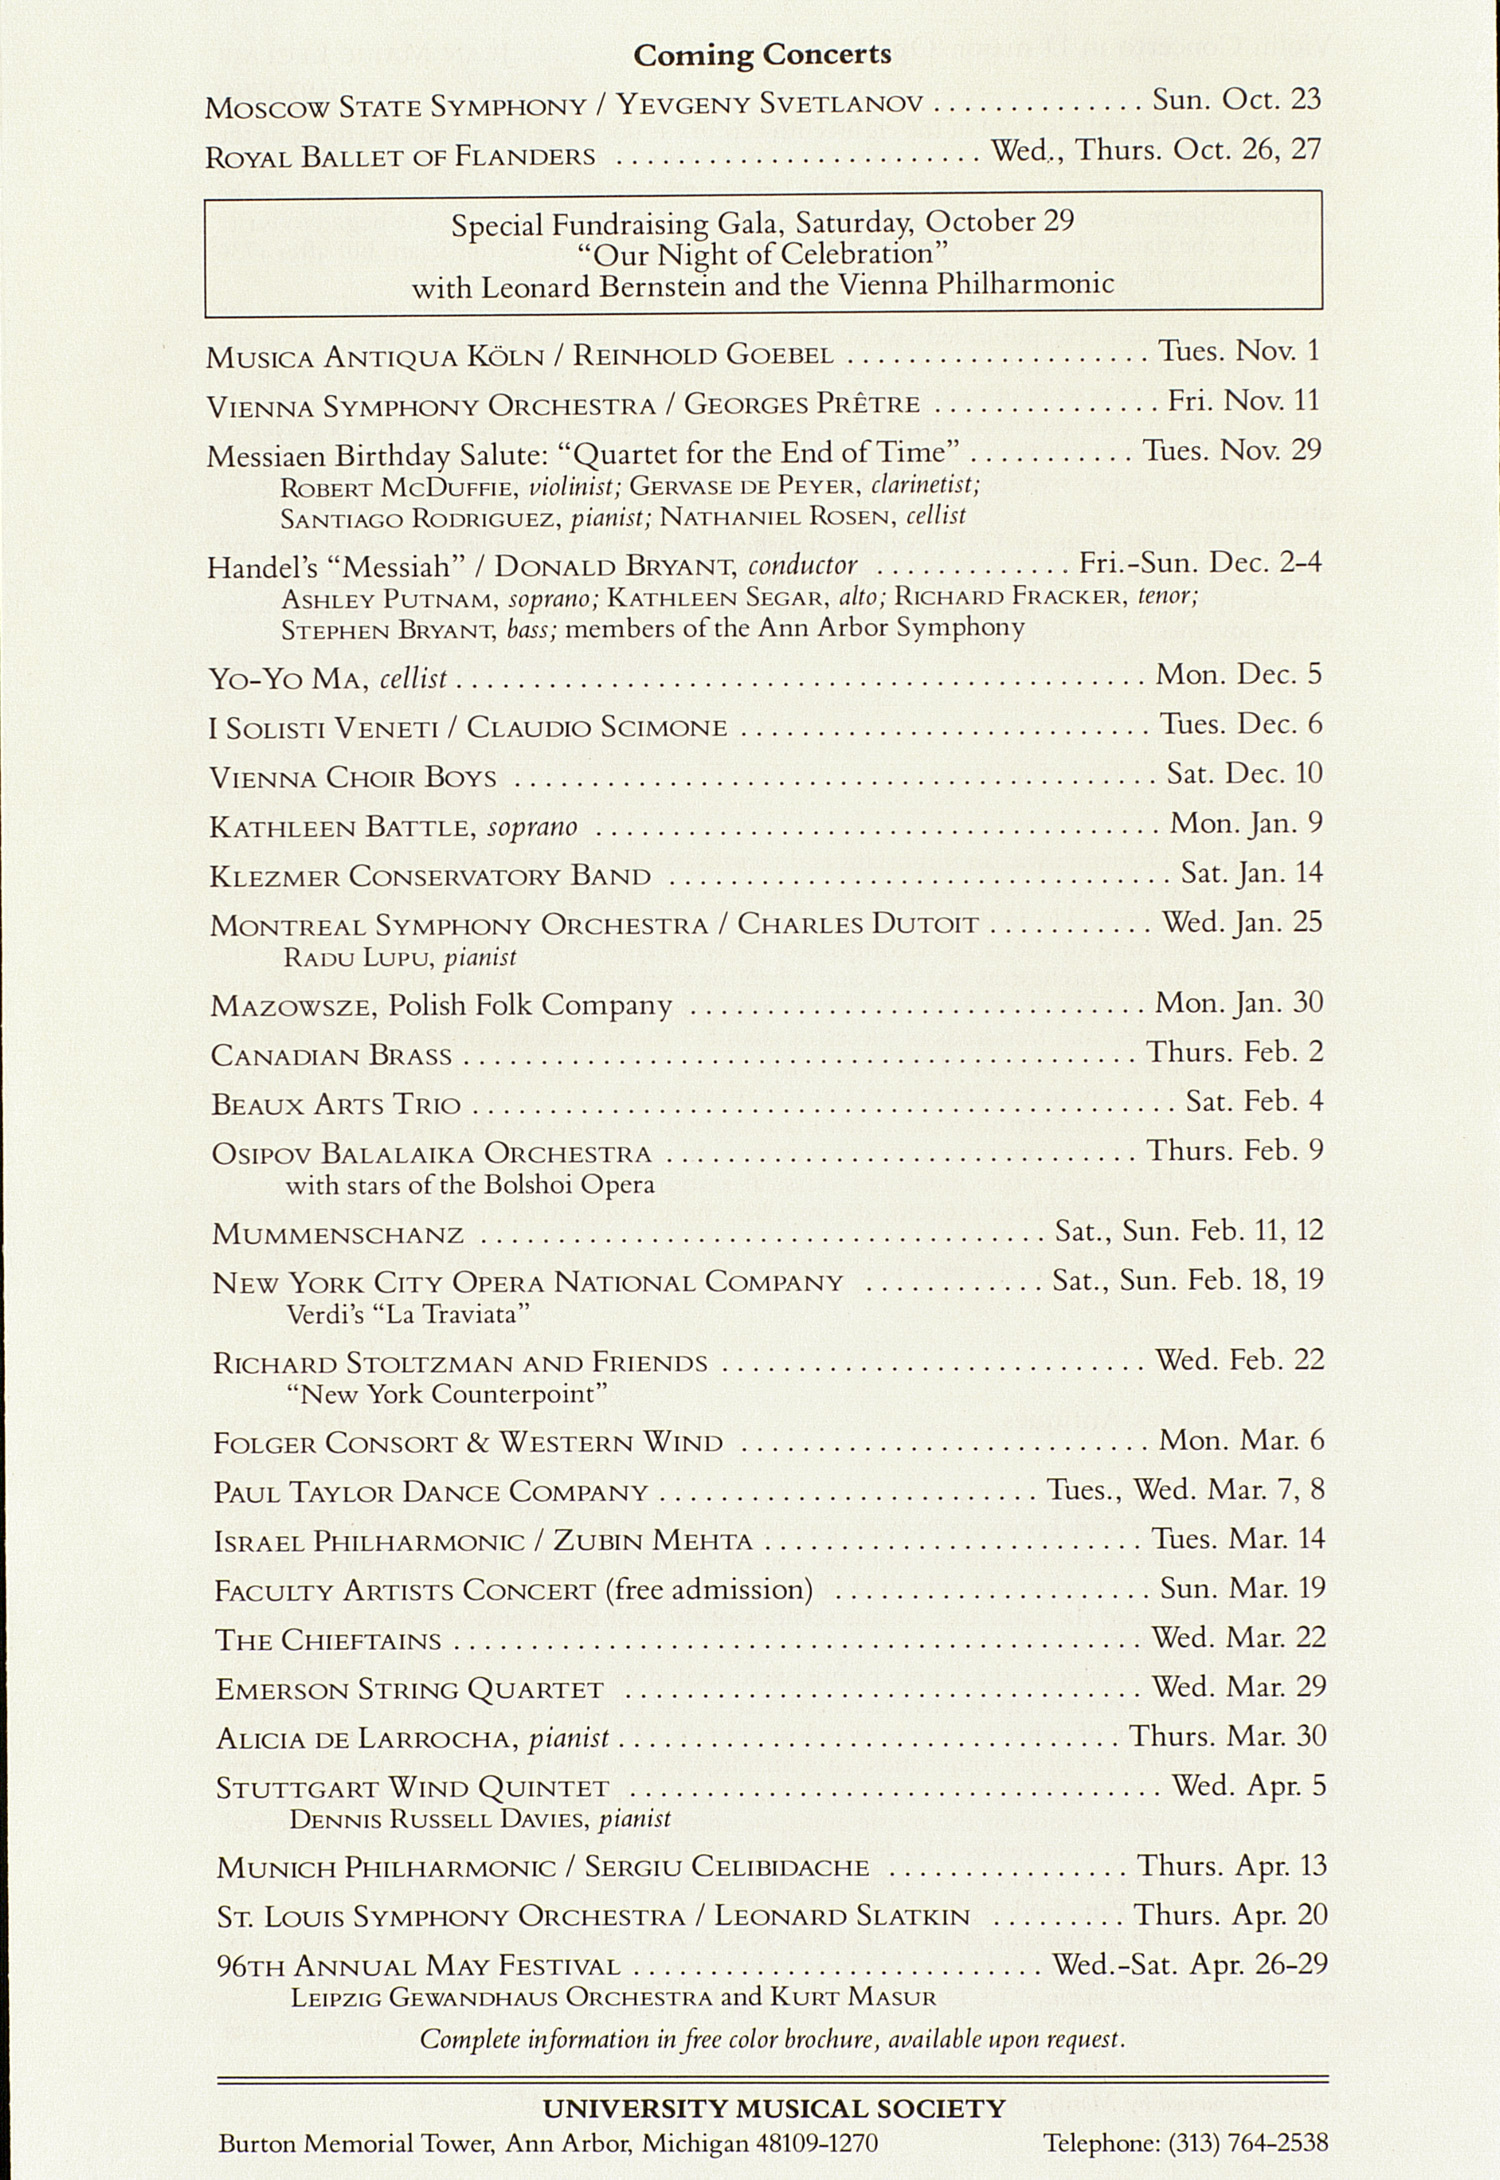 UMS Concert Program, October 15, 1988: International Presentations Of Music & Dance -- Paillard Chamber Orchestra image